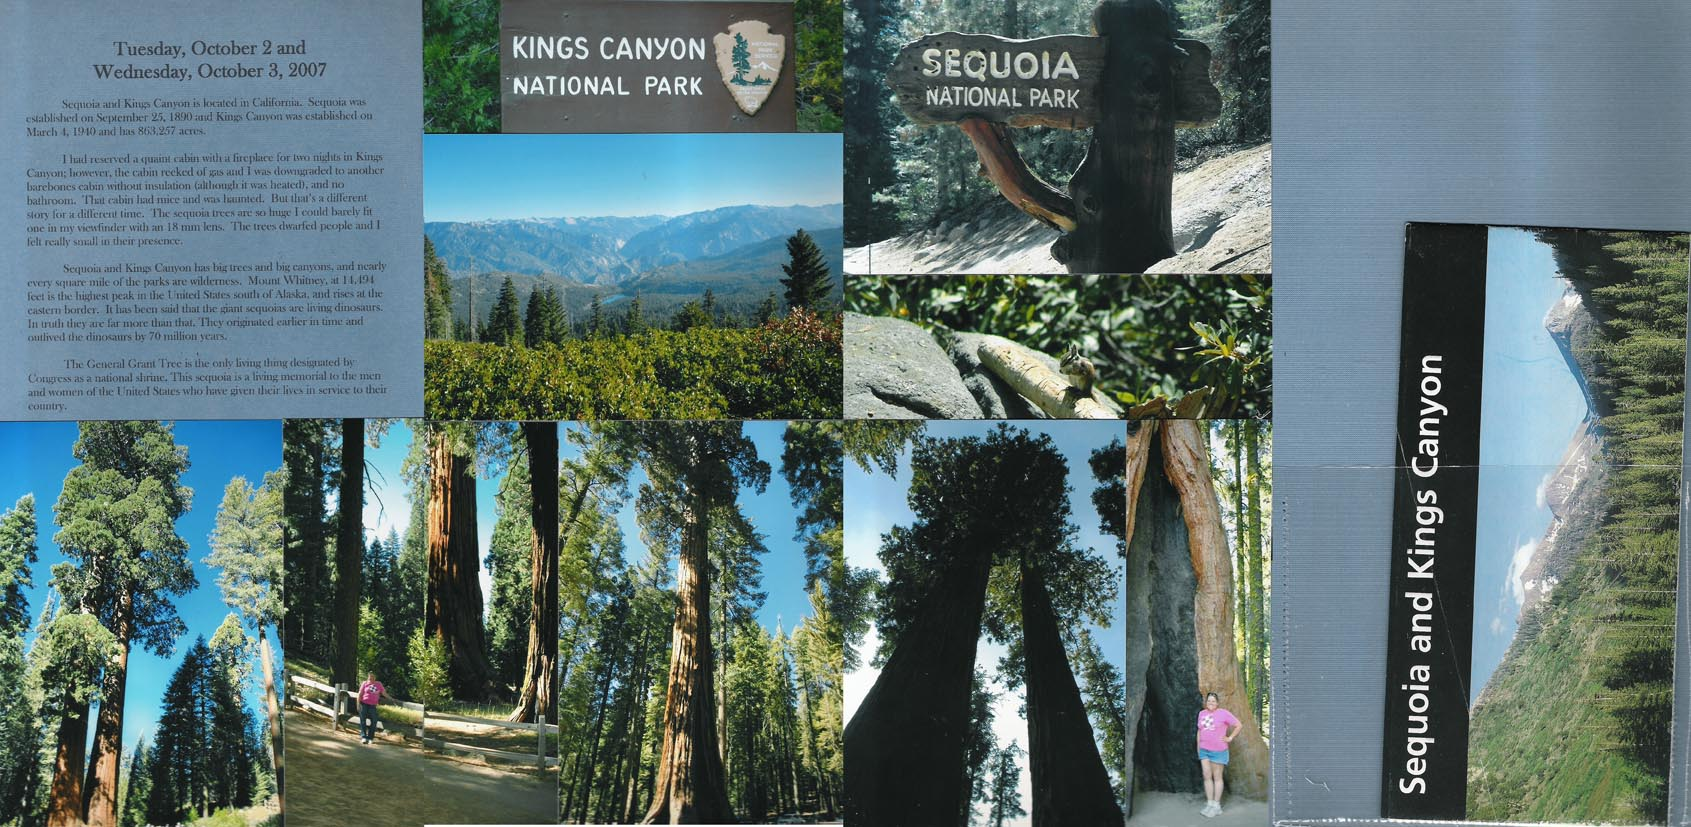 Sequoia_Kings Canyon NPLR